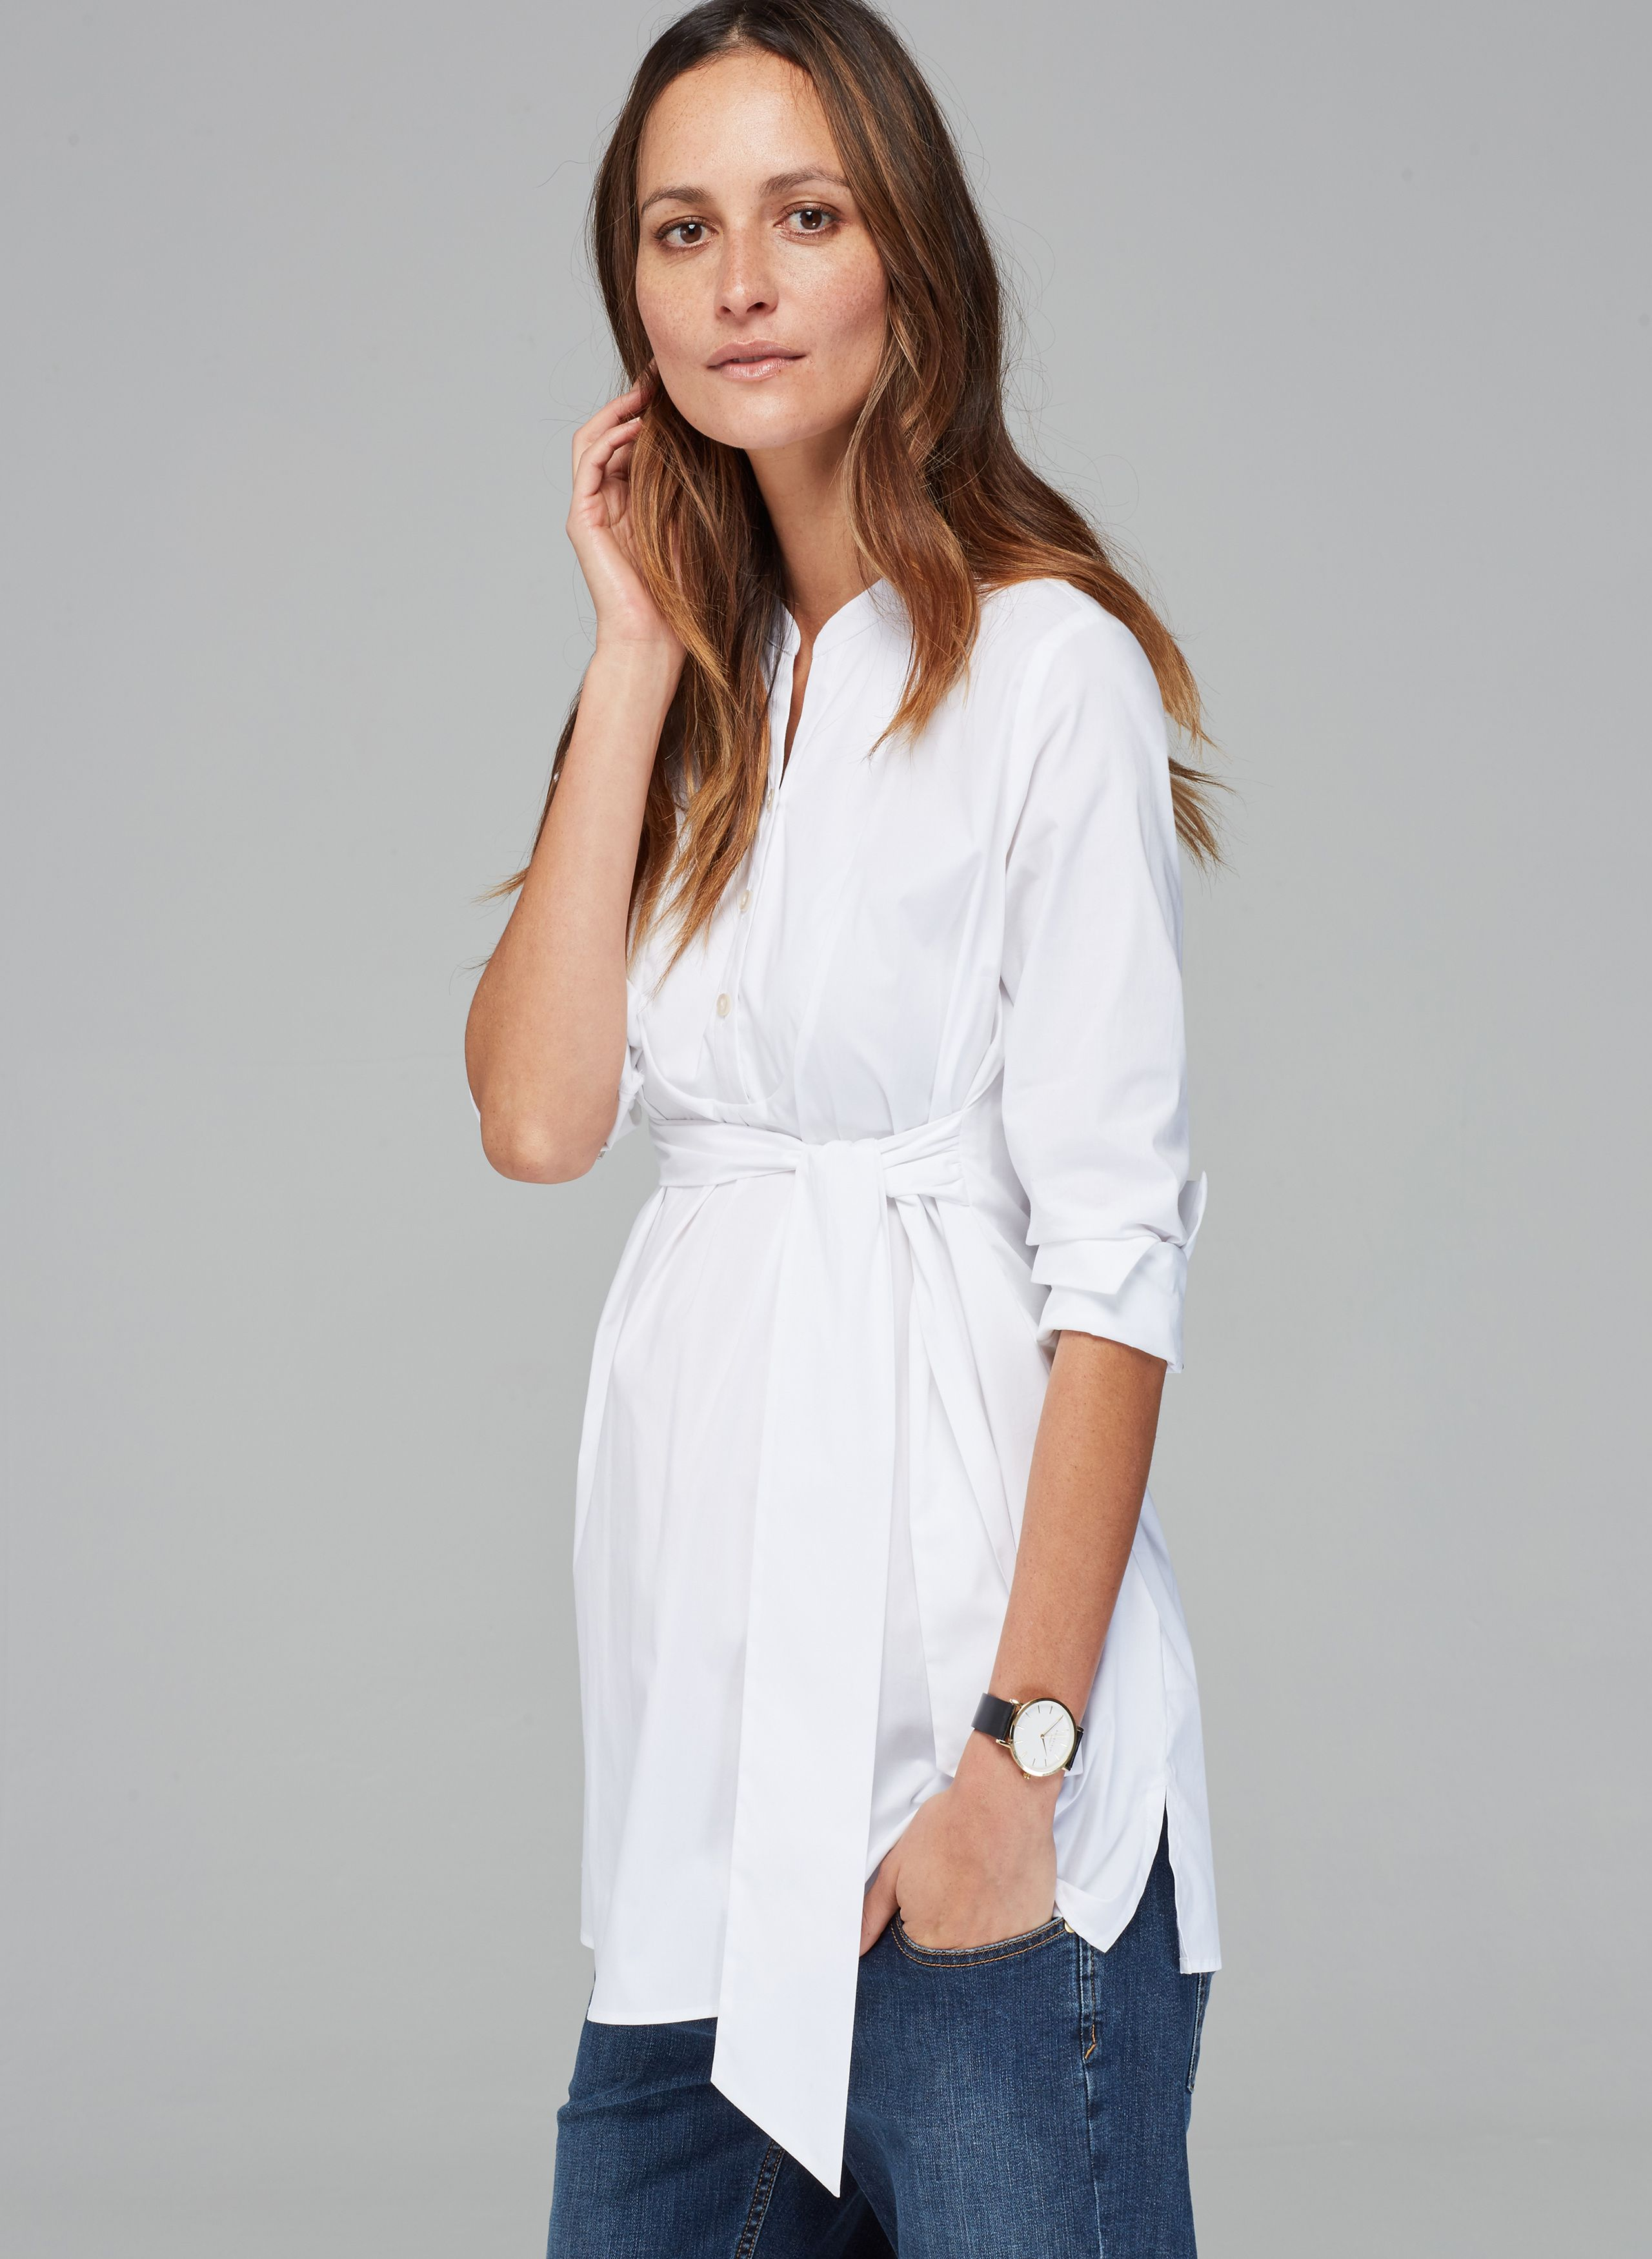 7c9bce8badfde6 Granville Maternity Shirt in [colour] at Isabella Oliver. Discover the  leading British maternity fashion brand for chic, premium quality maternity  clothes.